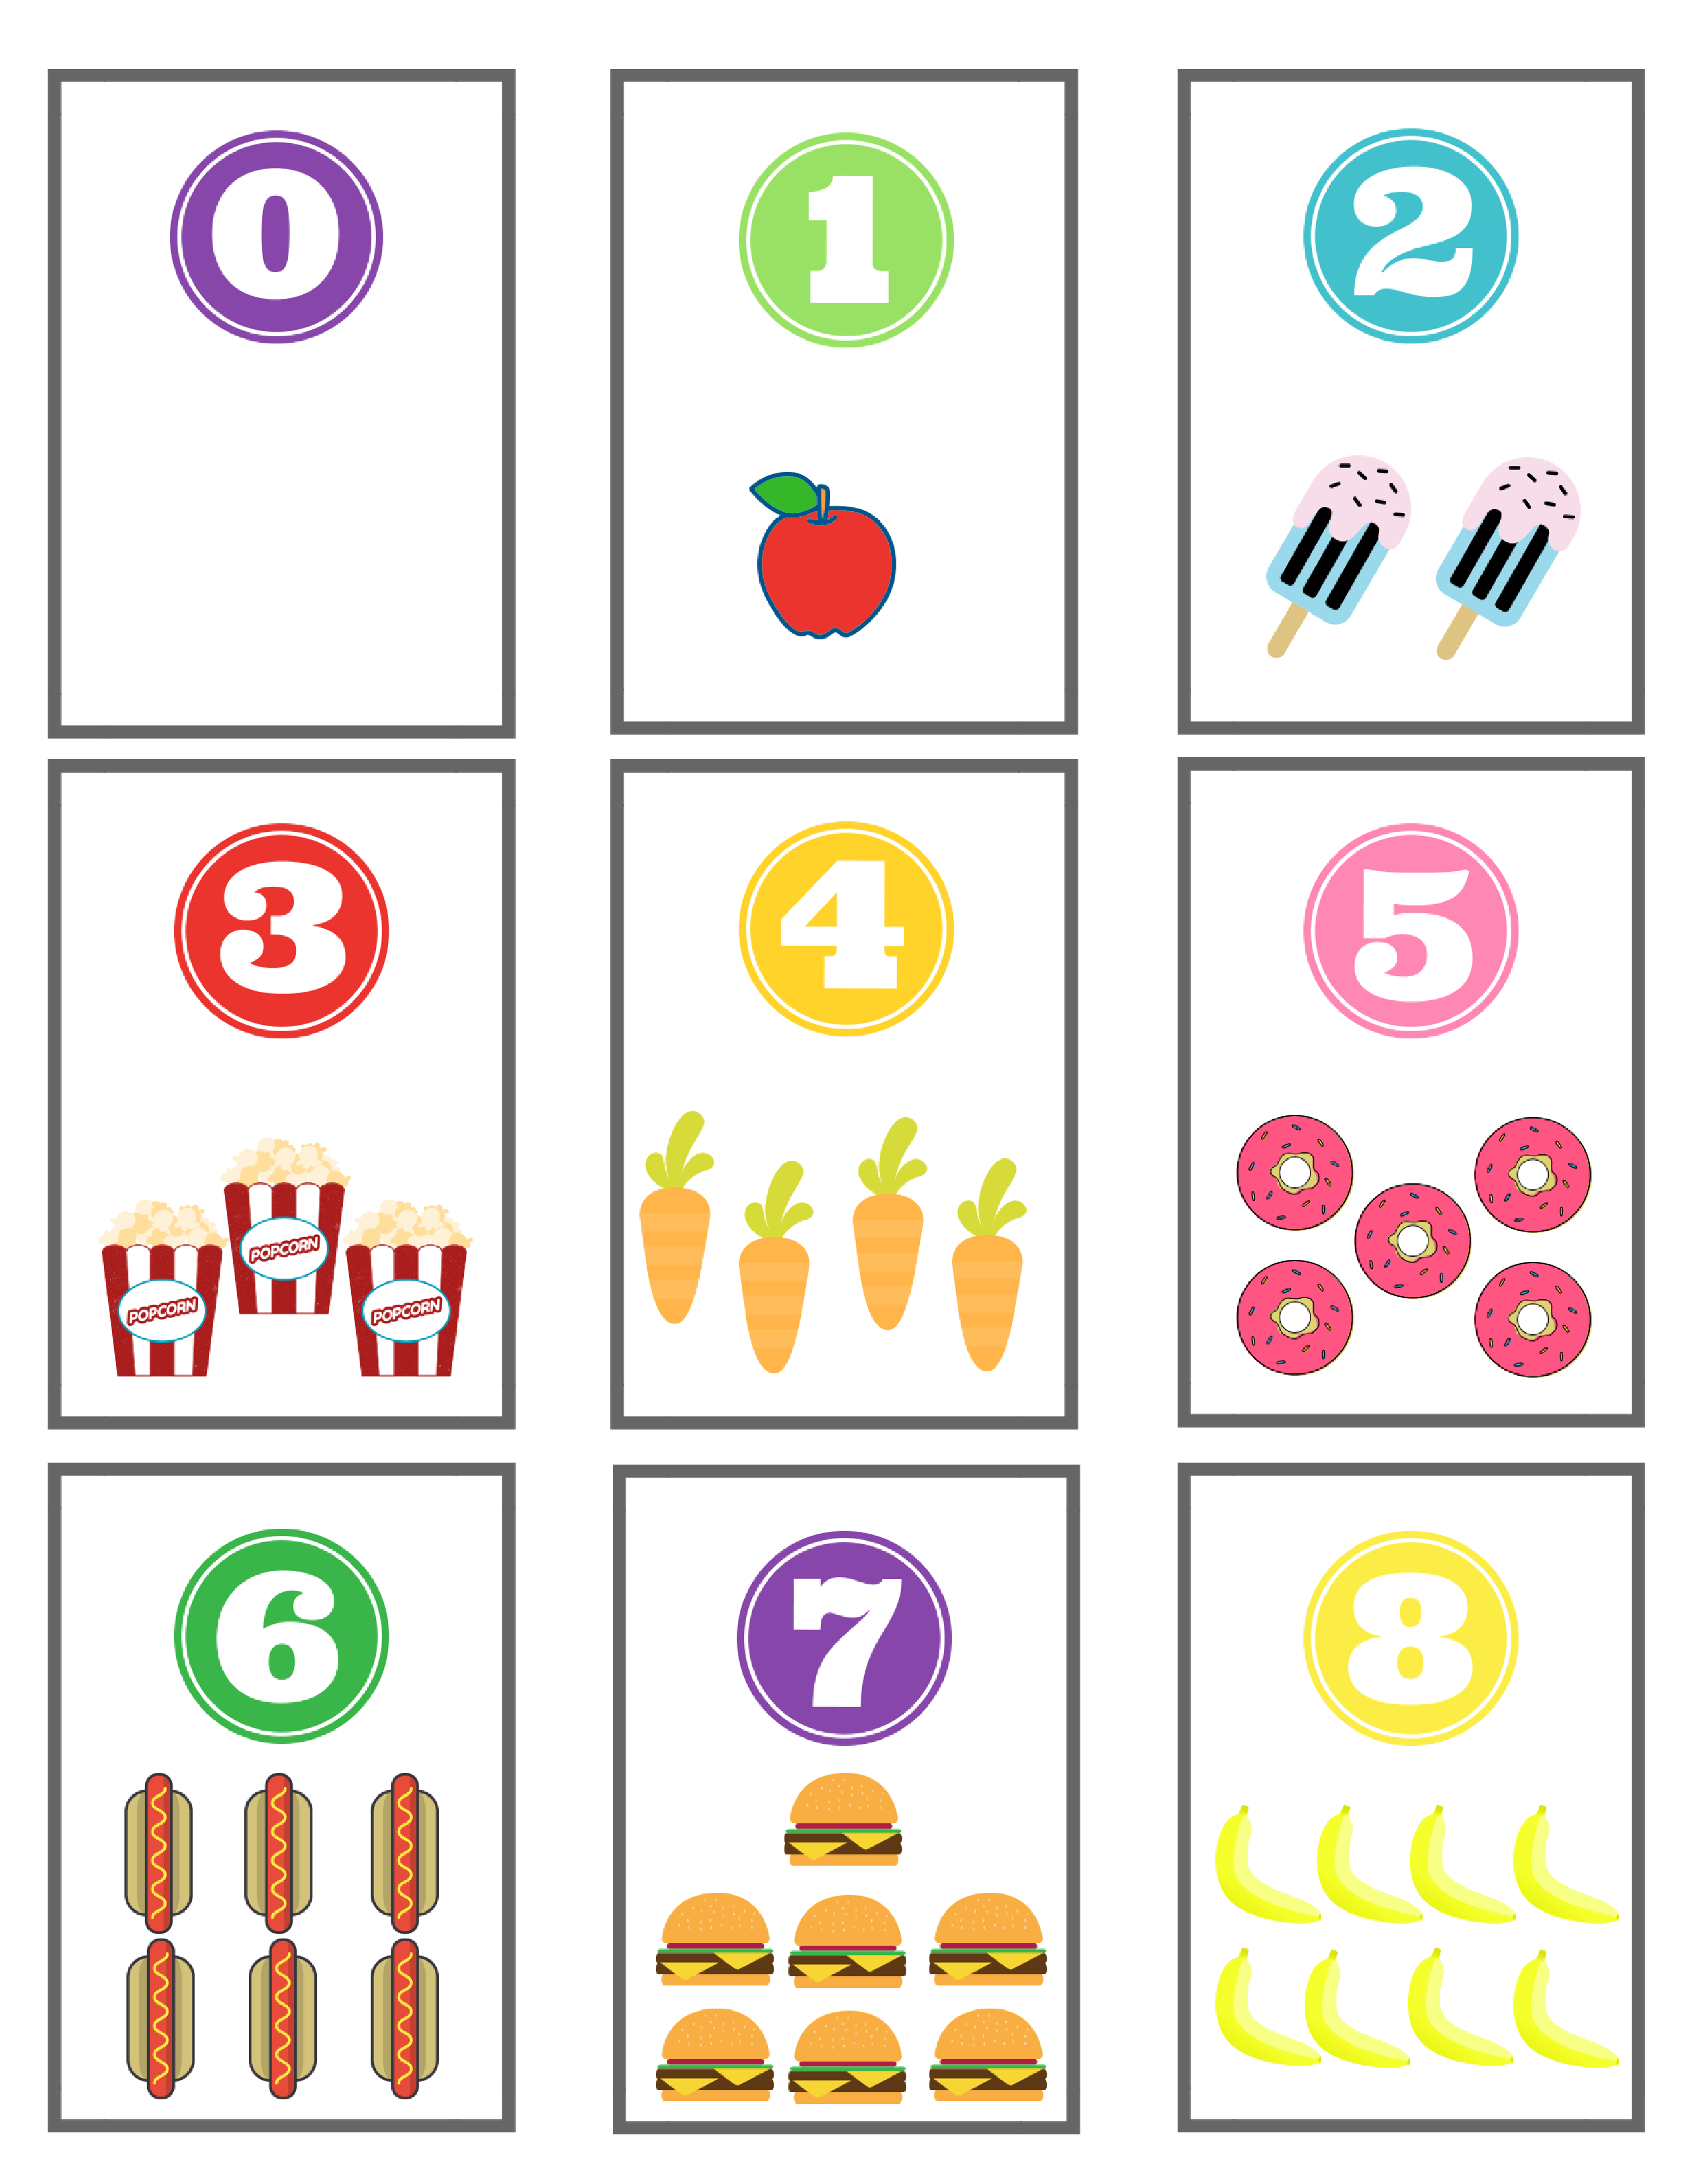 graphic regarding Free Printable Abc Flash Cards identify Selection Flashcards: Cost-free Printable - Basic Mother Analyze